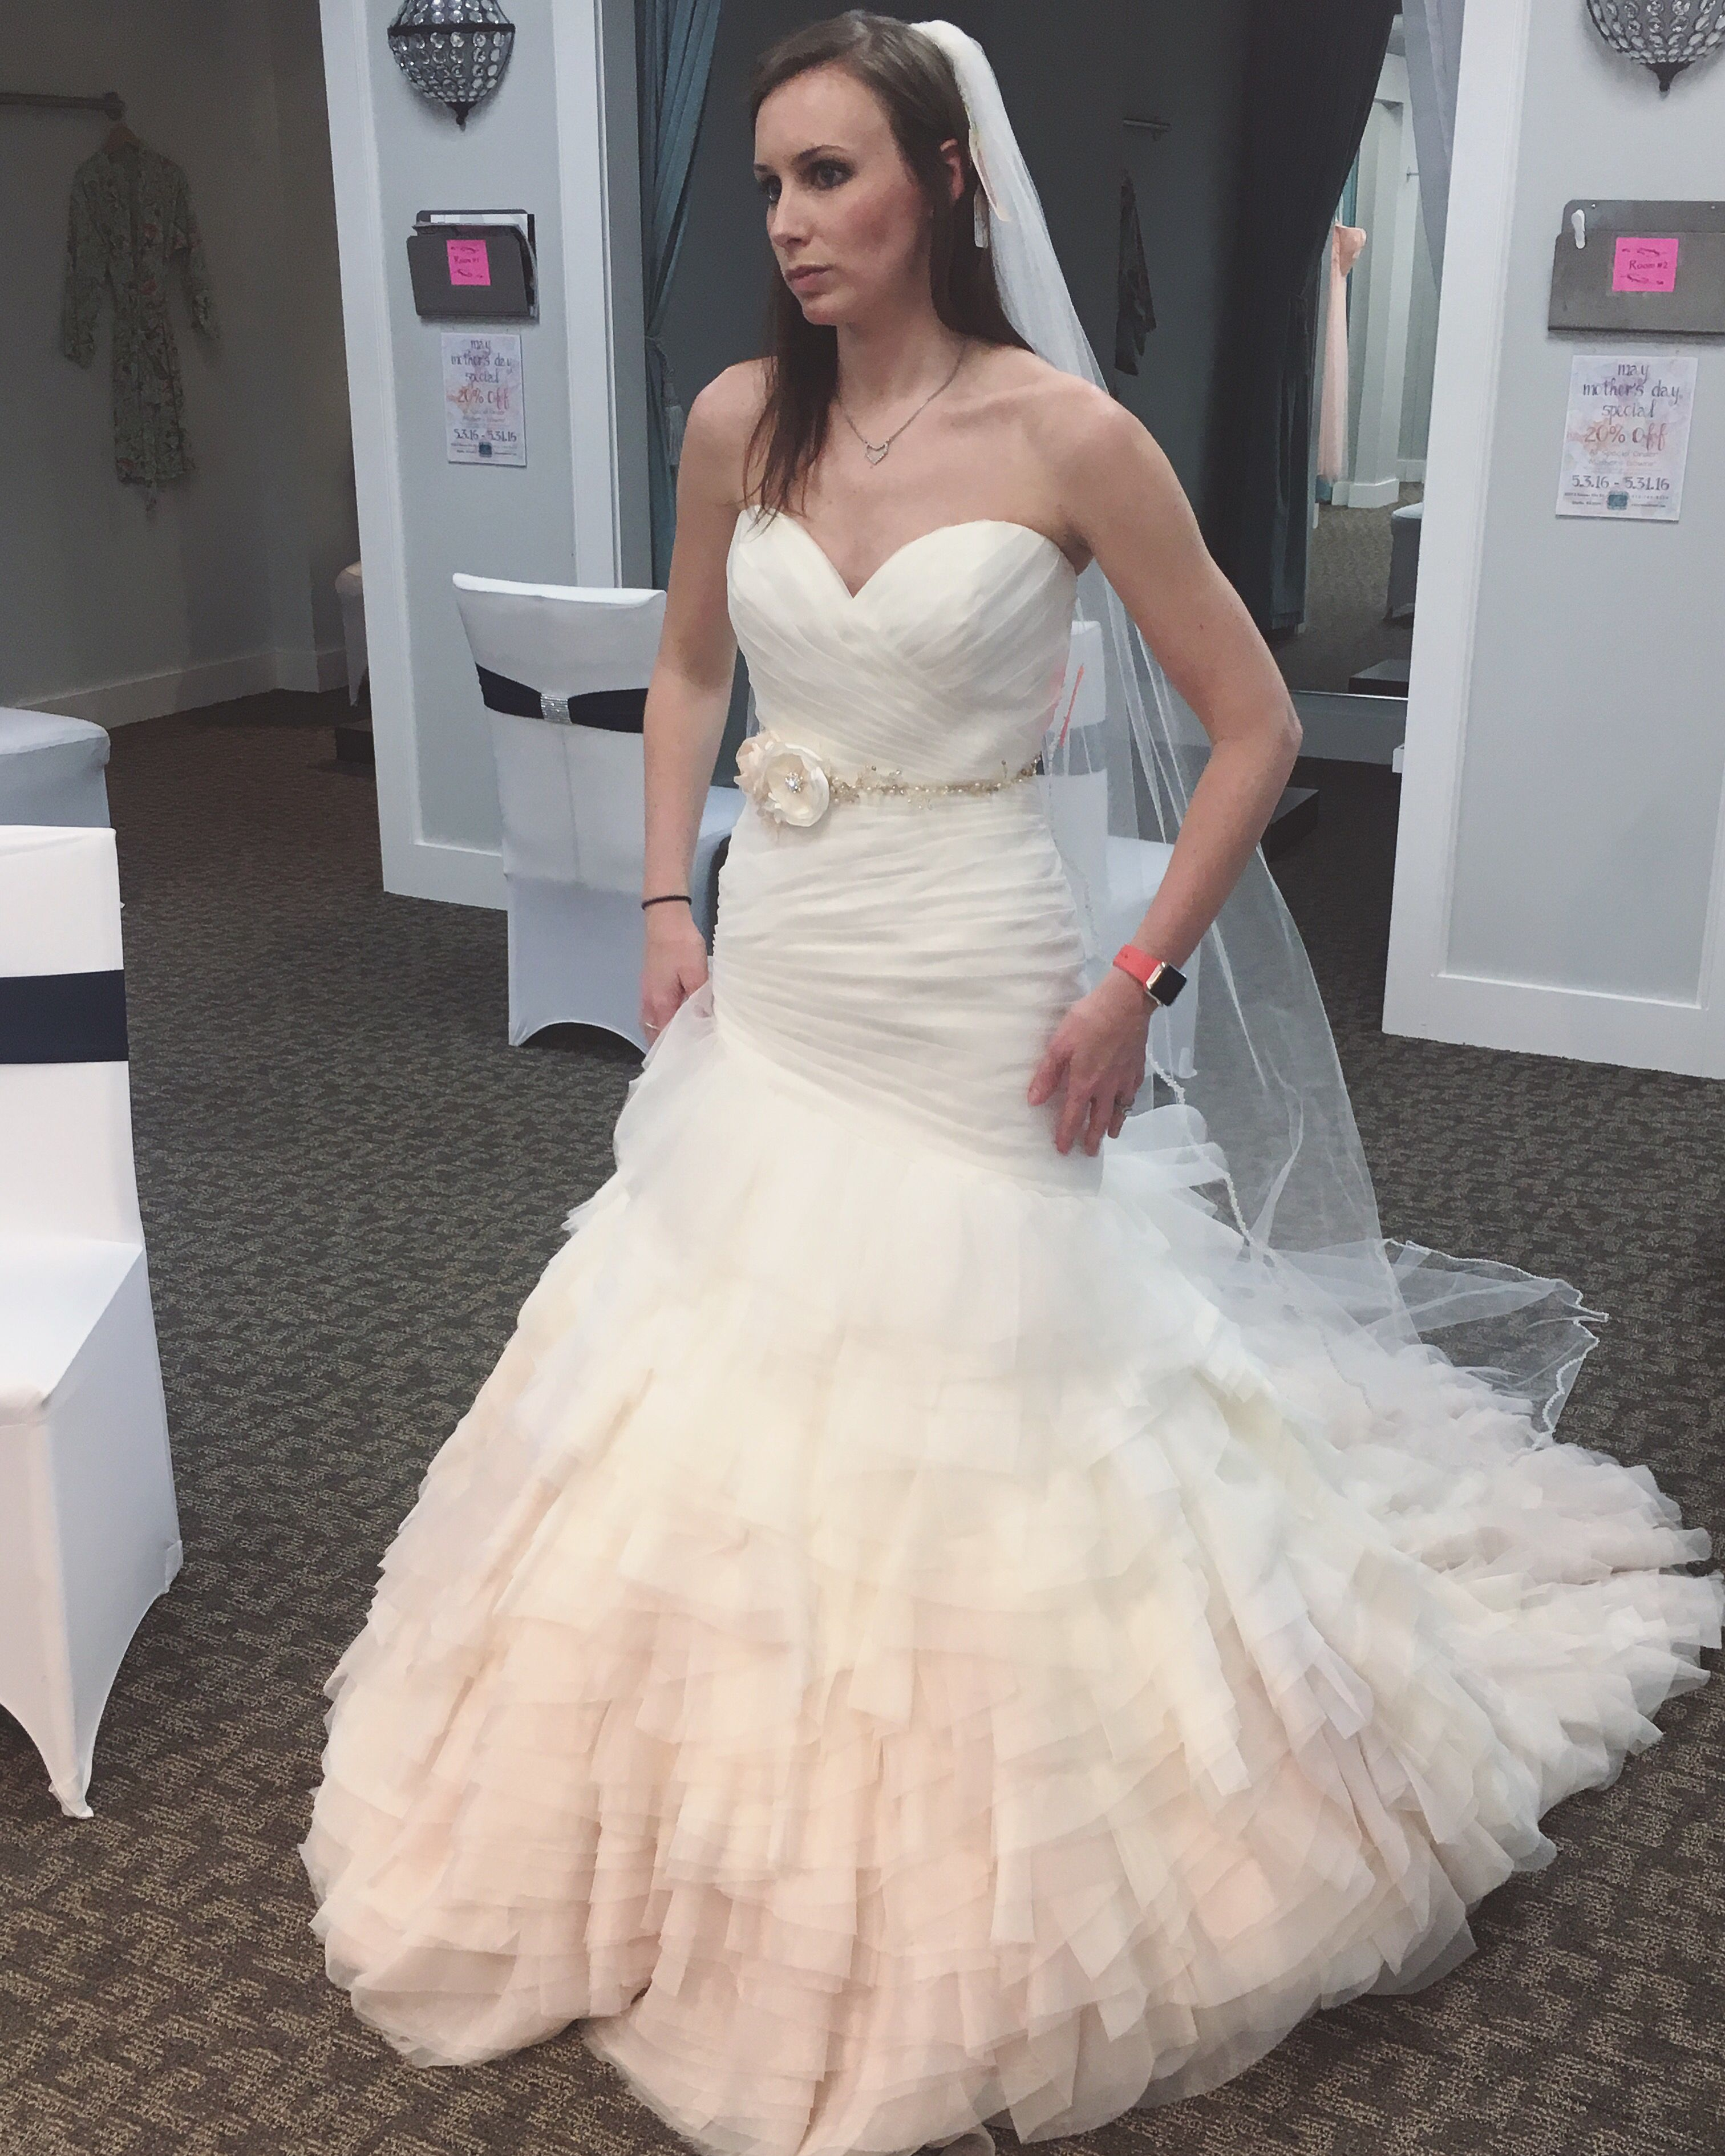 Wedding dresses with ruffles on skirt  Sweetheart Asymmetrical Dropped Waist Ruffle Ombré Skirt Wedding